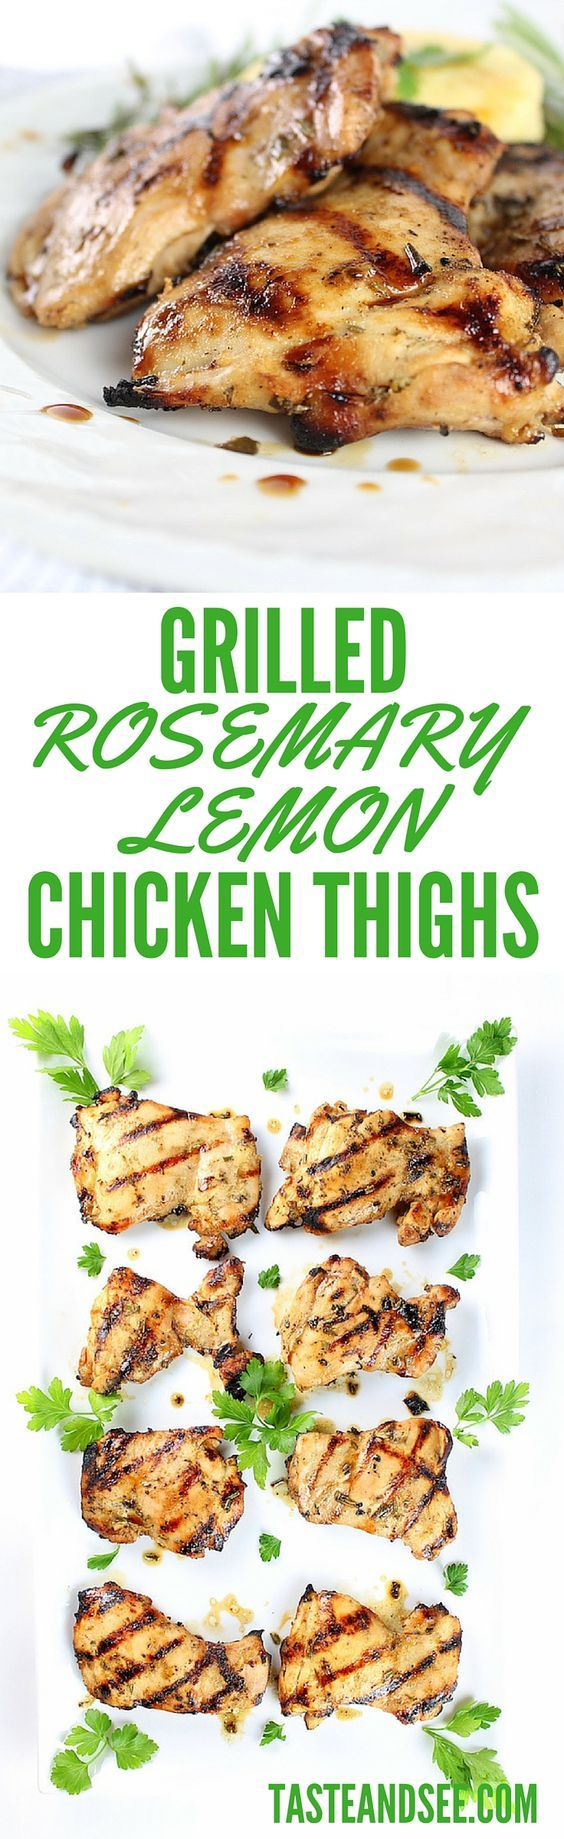 Grilled Rosemary Lemon #Chicken Thighs – marinated in lemon, rosemary, Dijon mustard, & honey… full of flavor, juicy, and beautifully caramelized.  A quick, easy & delicious entrée!  http://tasteandsee.com